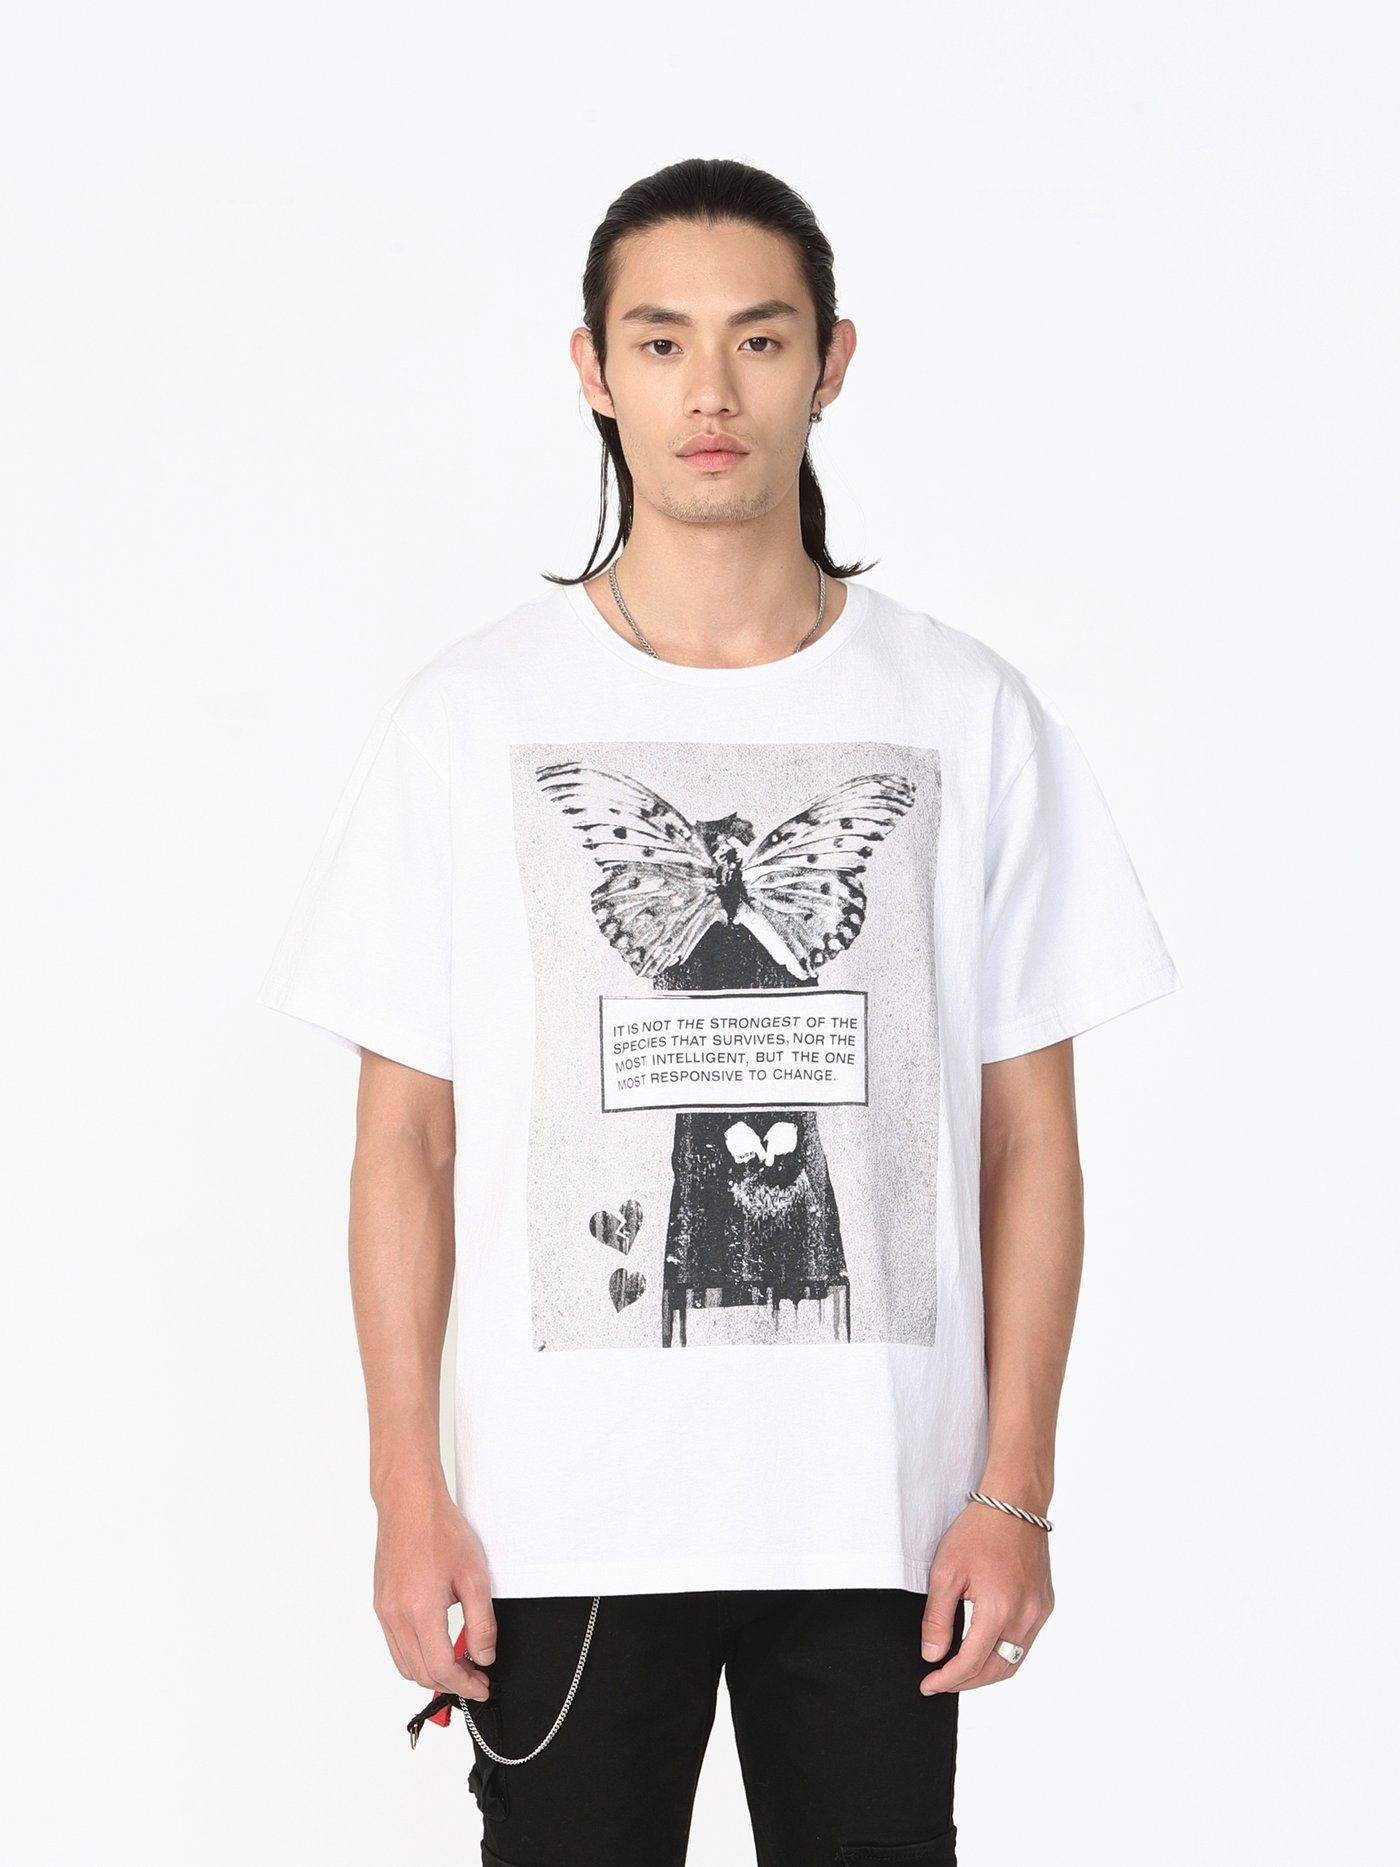 62c4ad467 Responsive to Change Tee in White in 2019 | Commune 2 | Tees, Mens tops